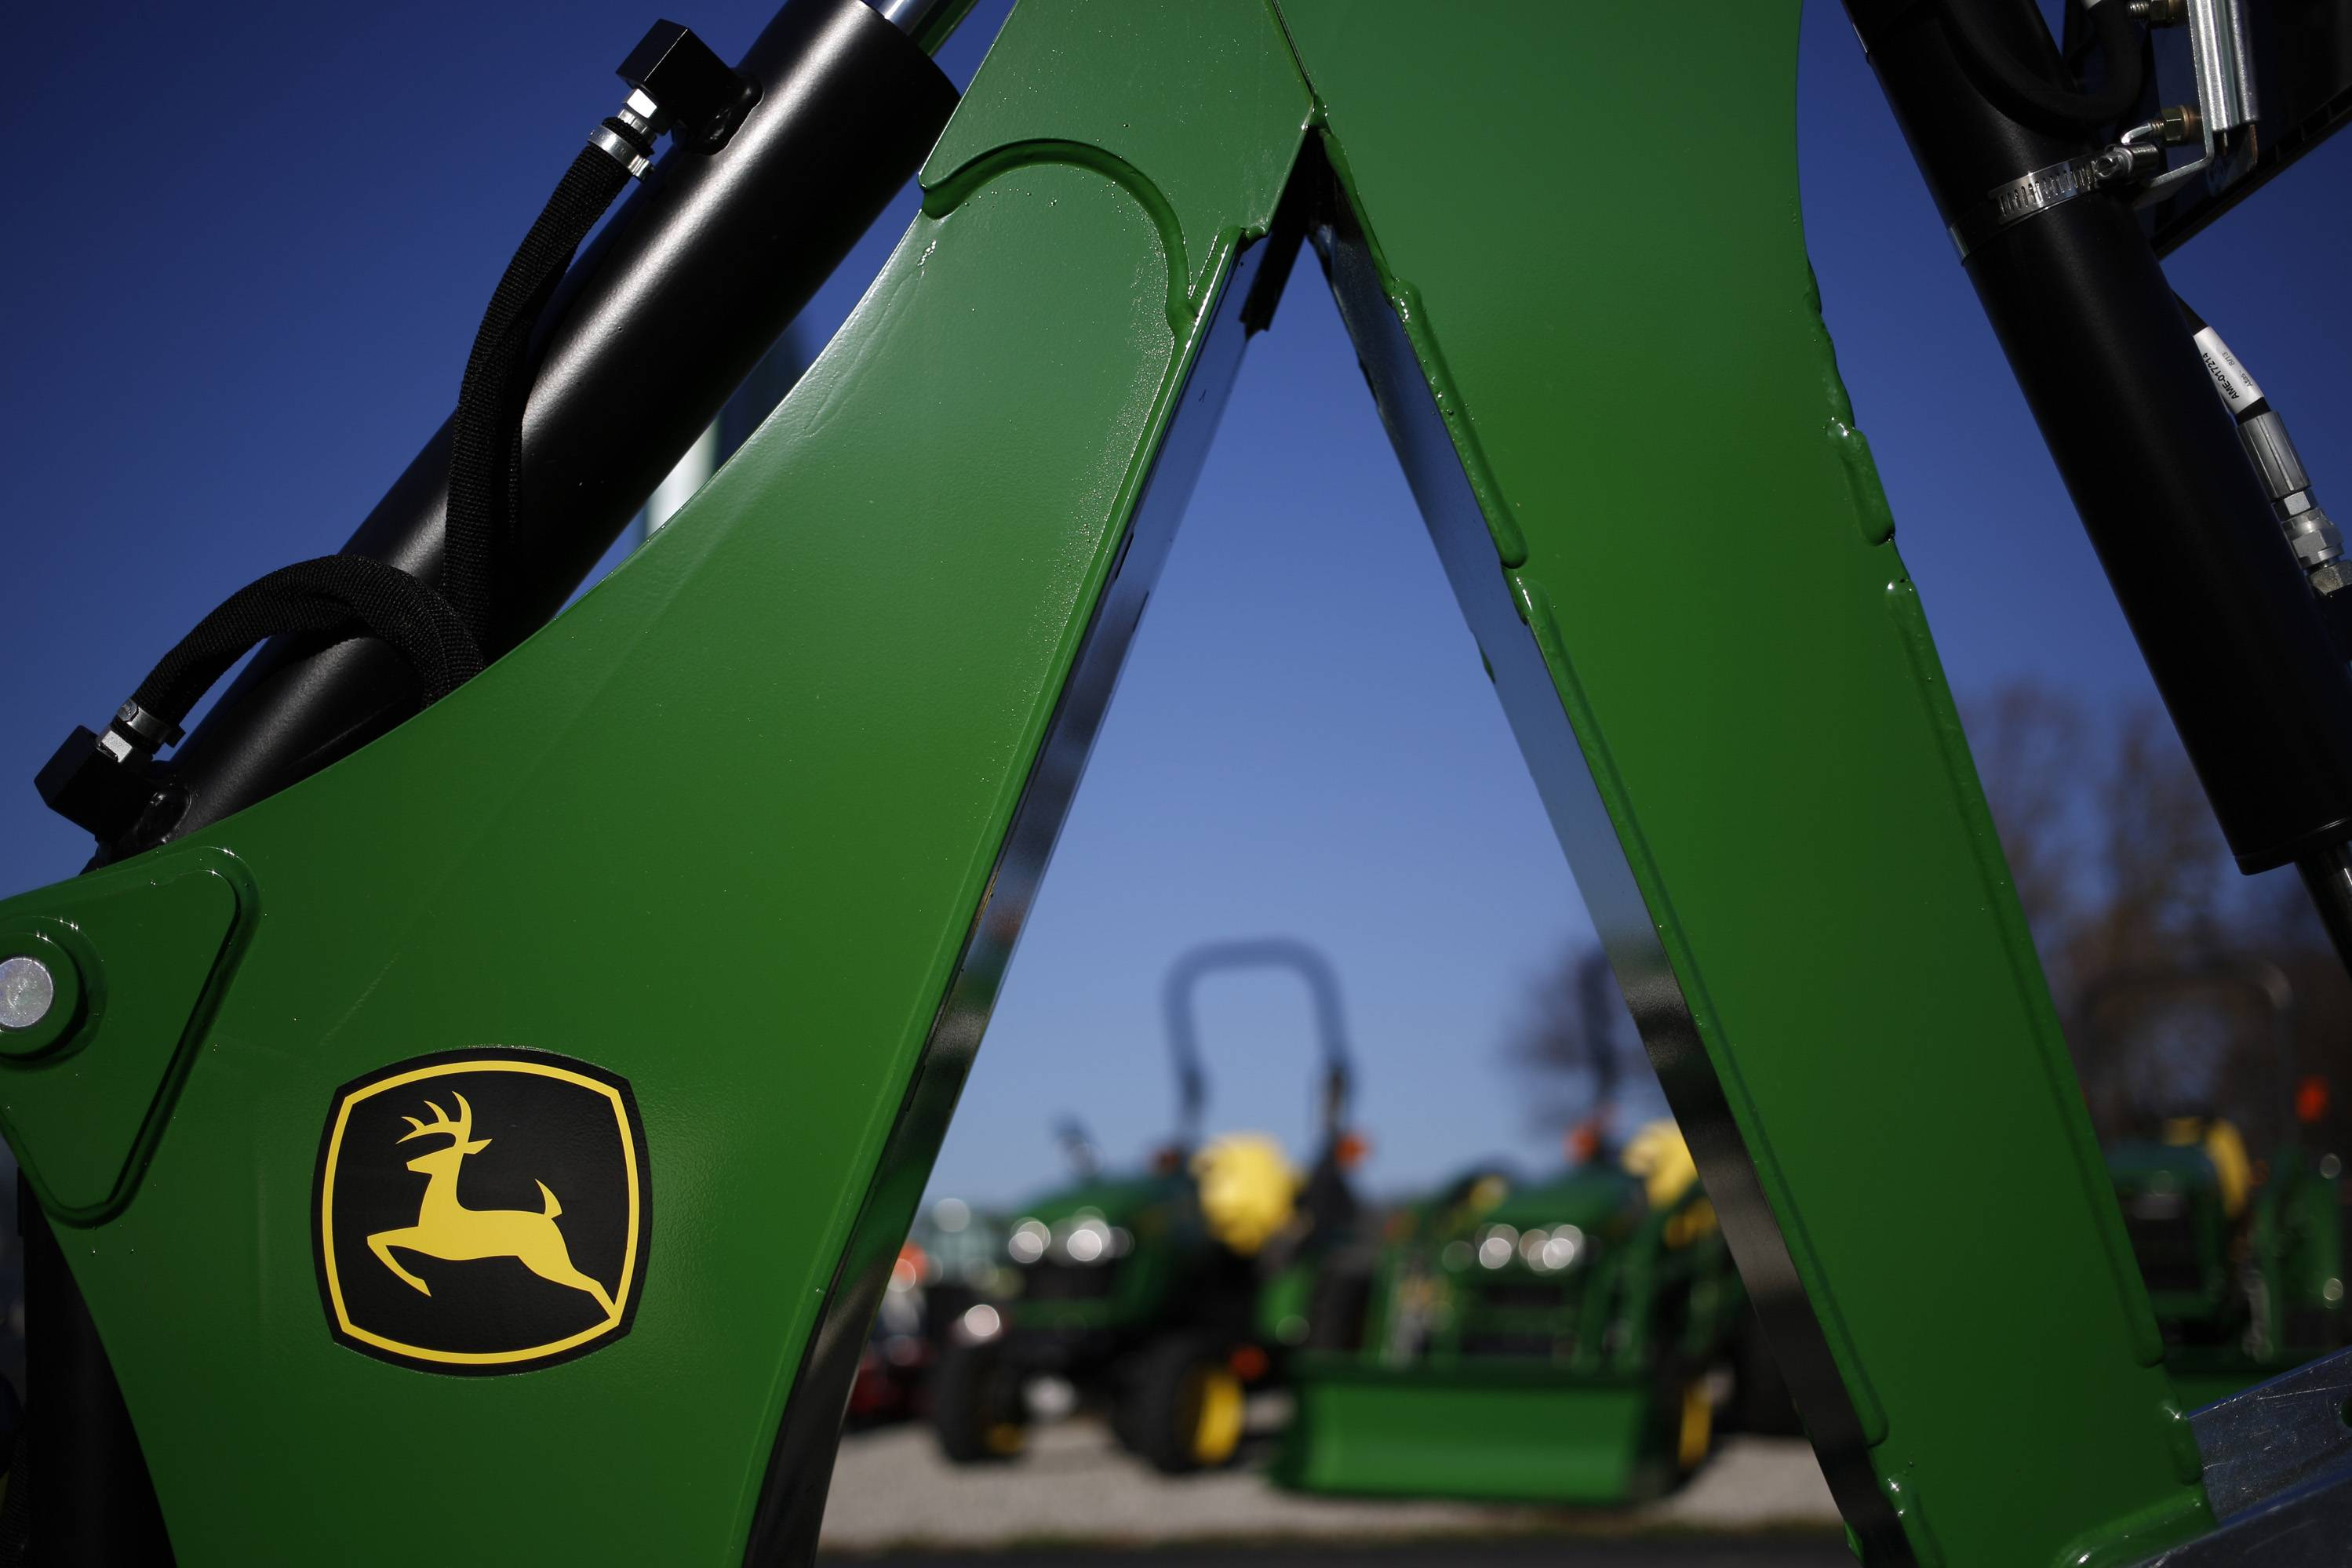 Deere & Co. says its first-quarter net income rose almost 5 percent, but it projected a slowdown in sales of farm equipment this year.